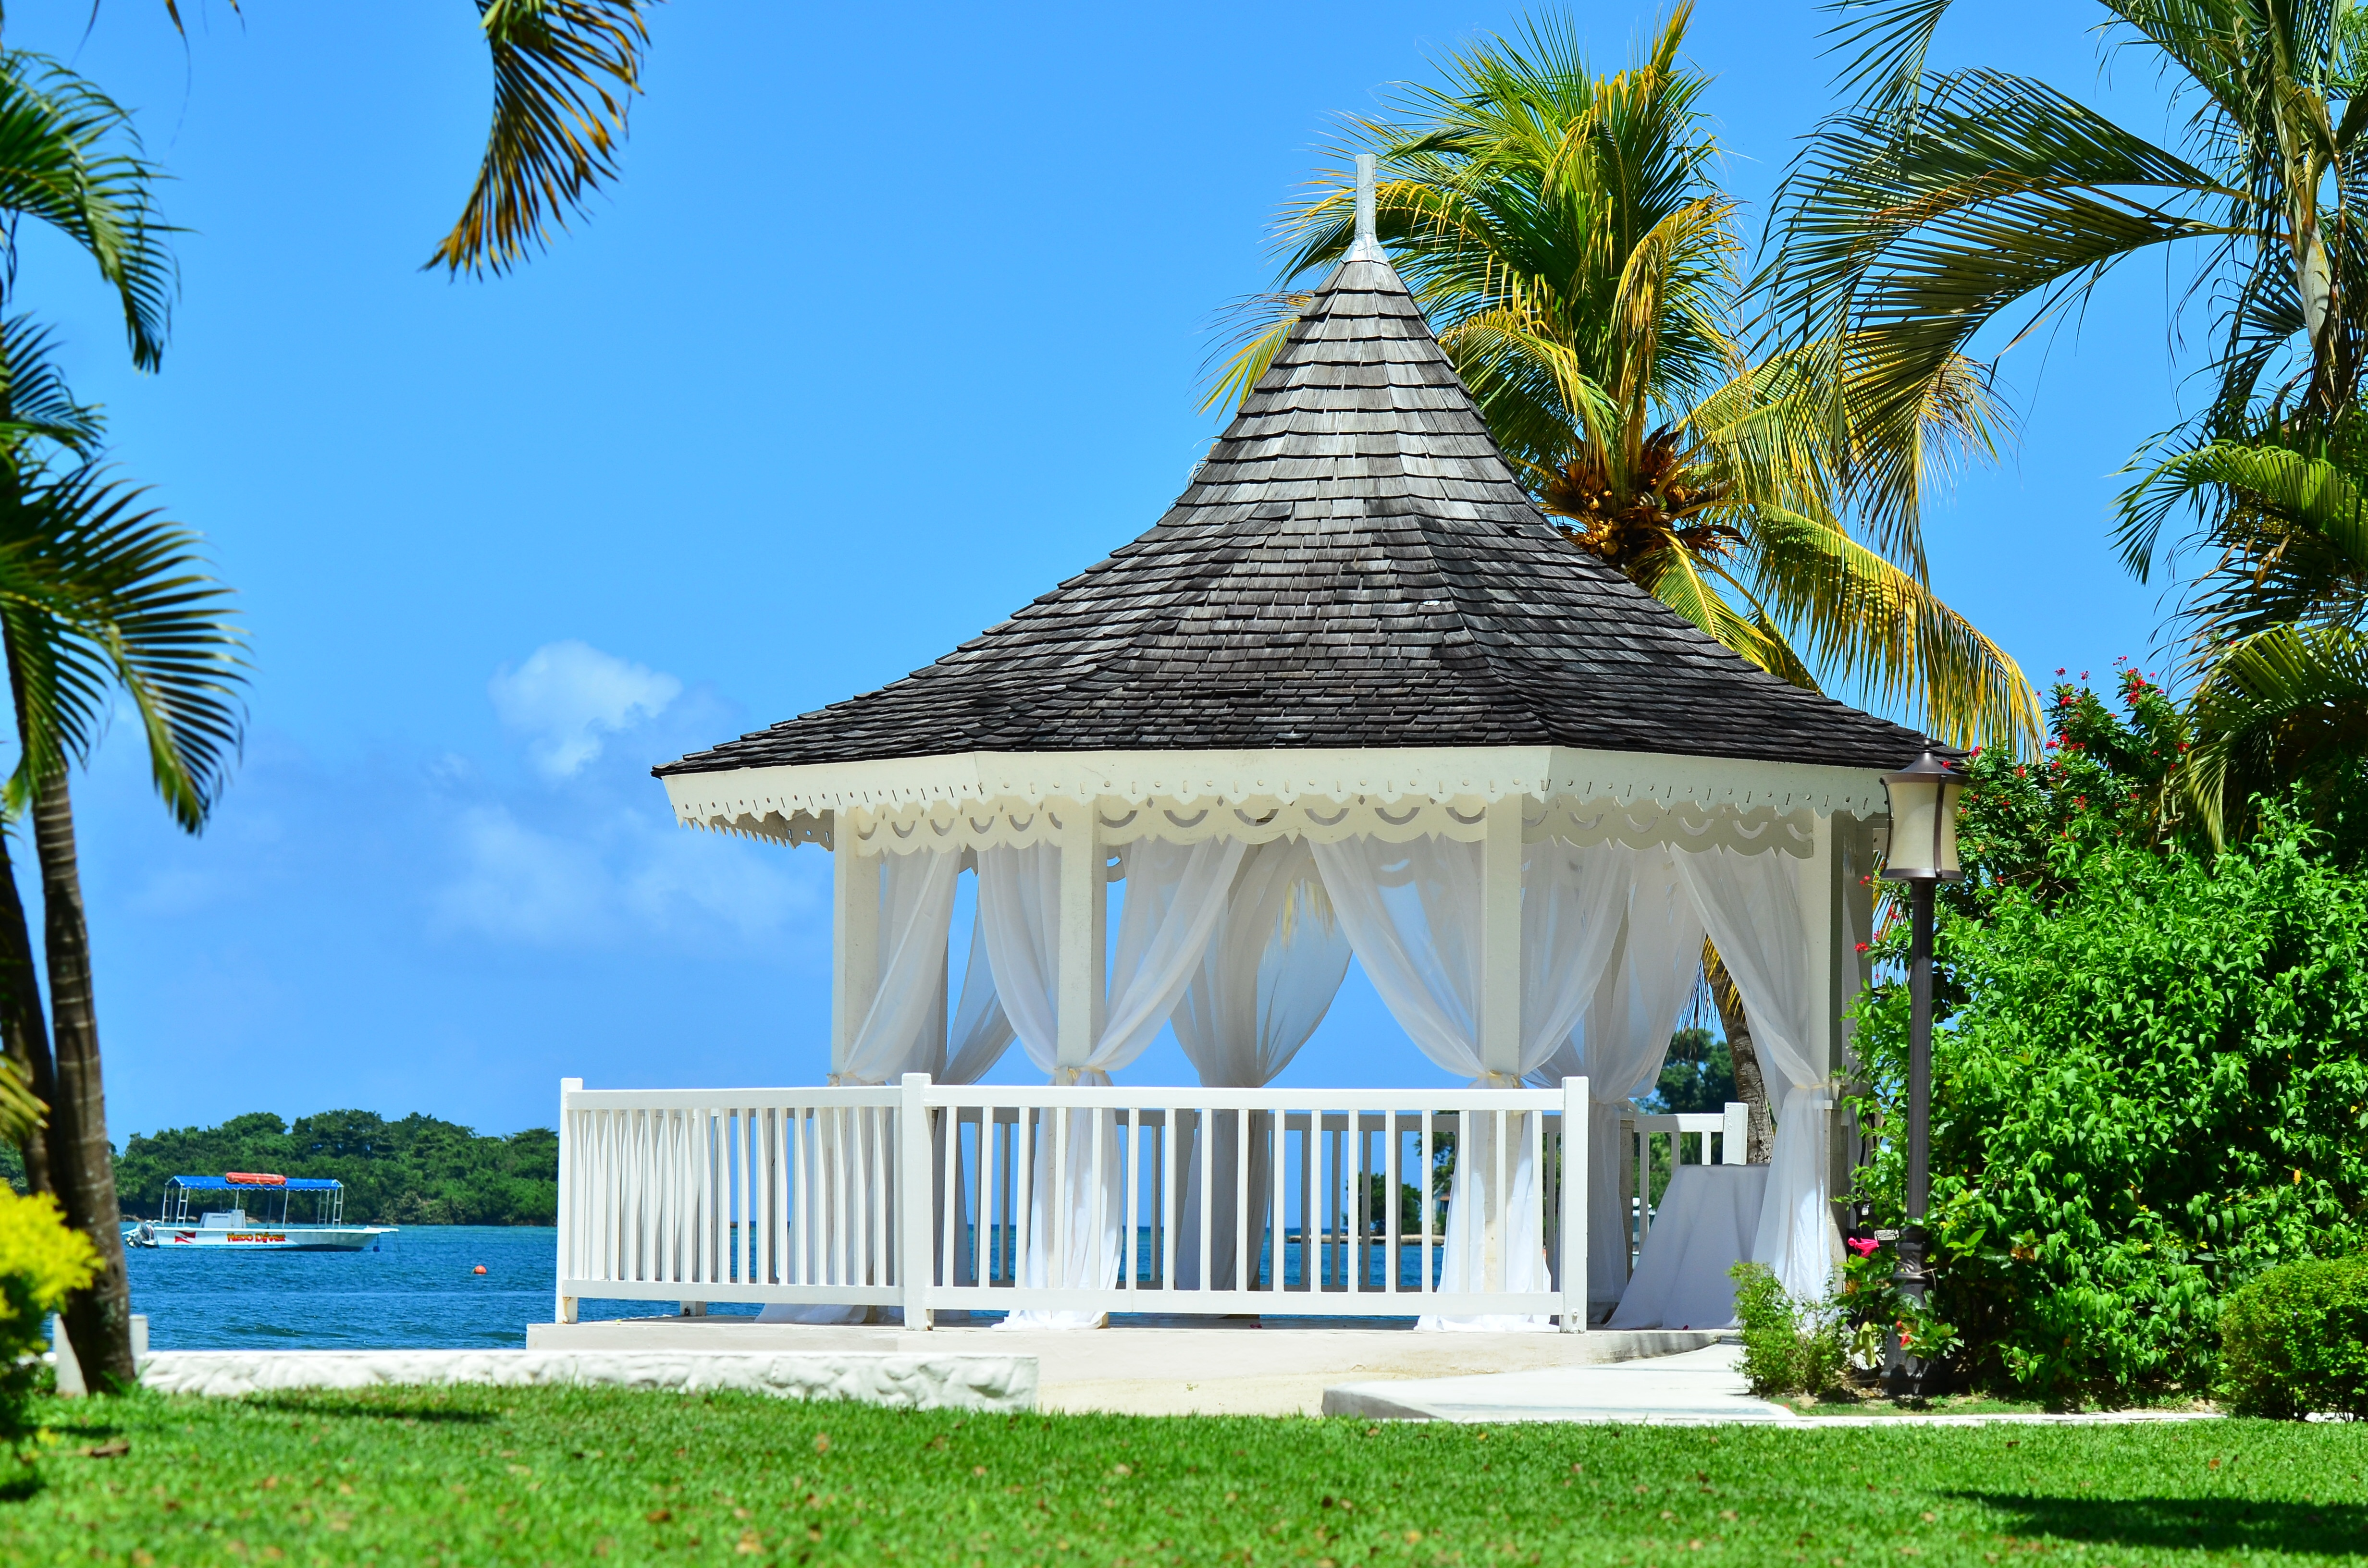 Ceremony Site At Sandals Negril